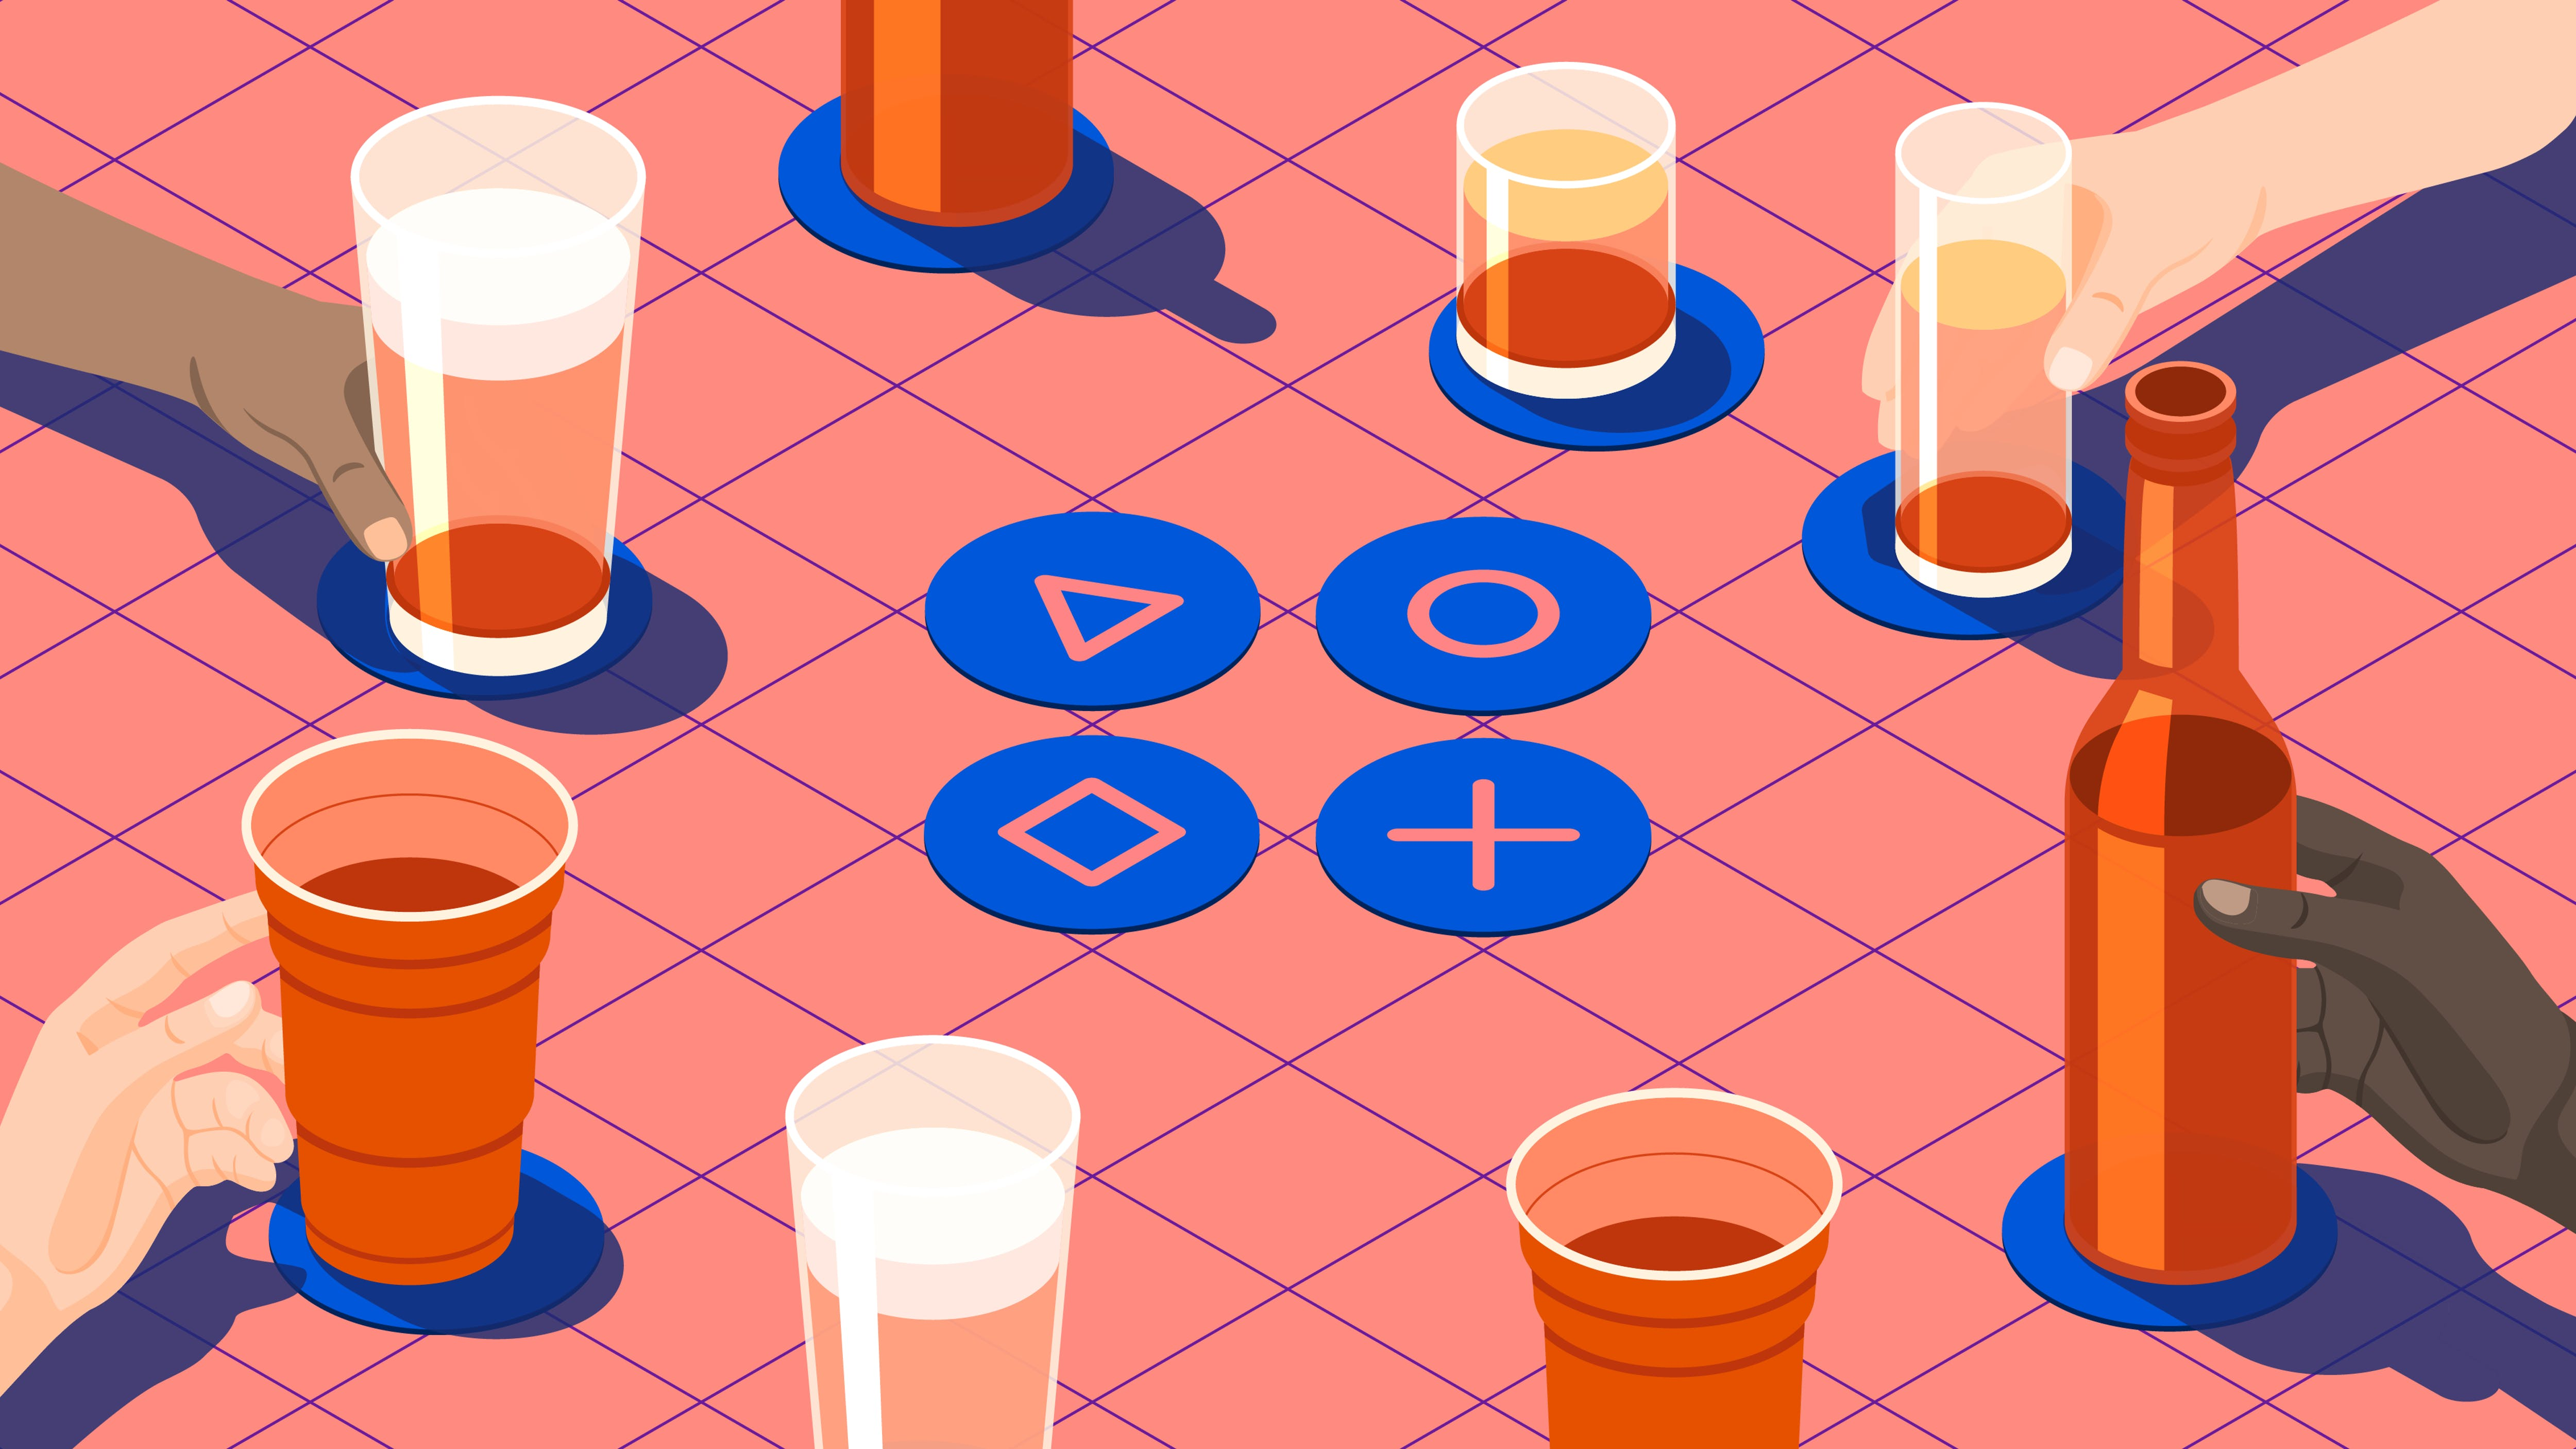 A round of drinks, positioned around beer coasters that resemble the buttons of a PlayStation controller.